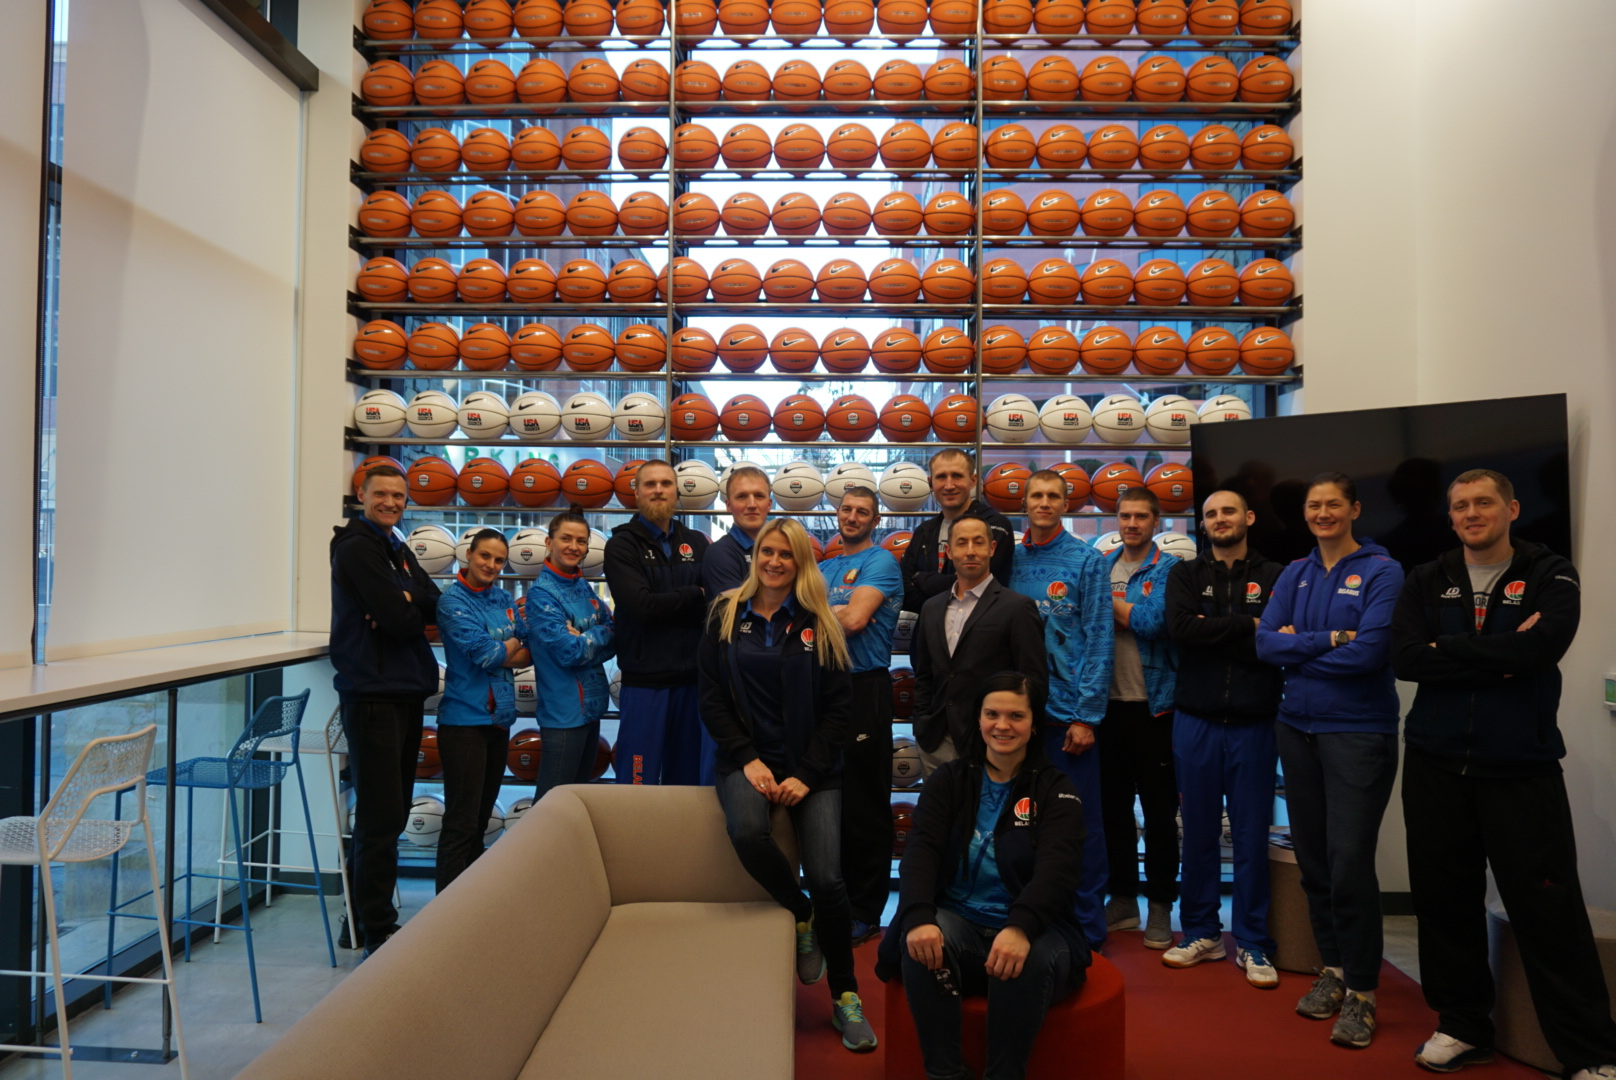 Sports Visitors from Belarus visiting USA Basketball, 2018.